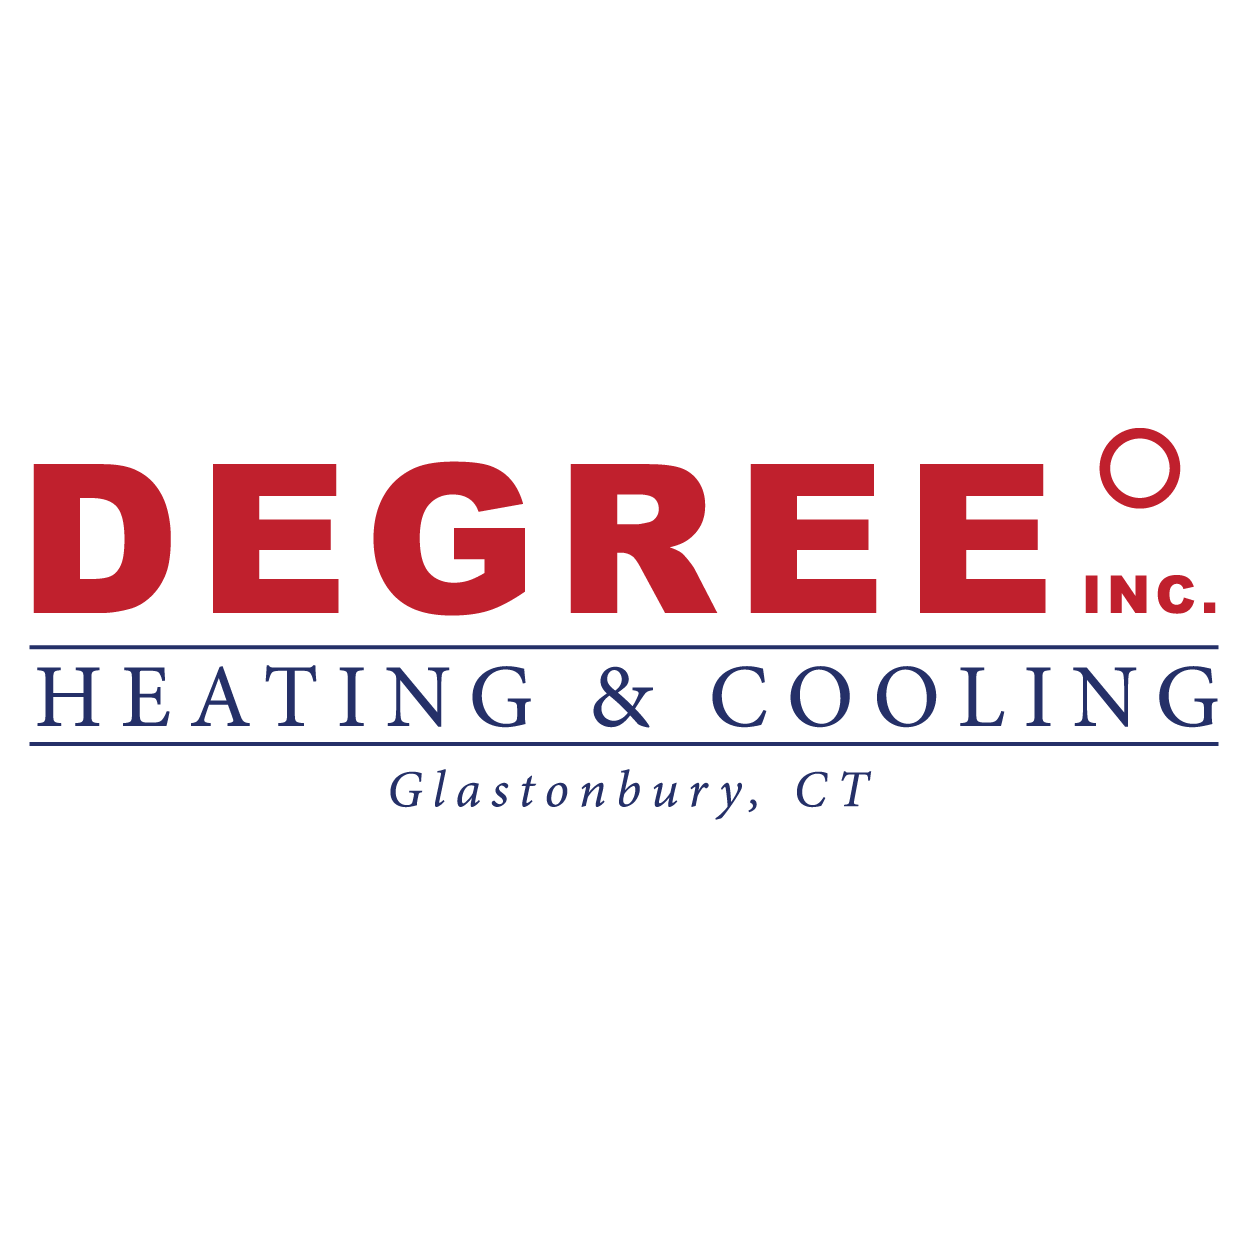 Degree Heating & Cooling, Inc. - Glastonbury, CT - Heating & Air Conditioning